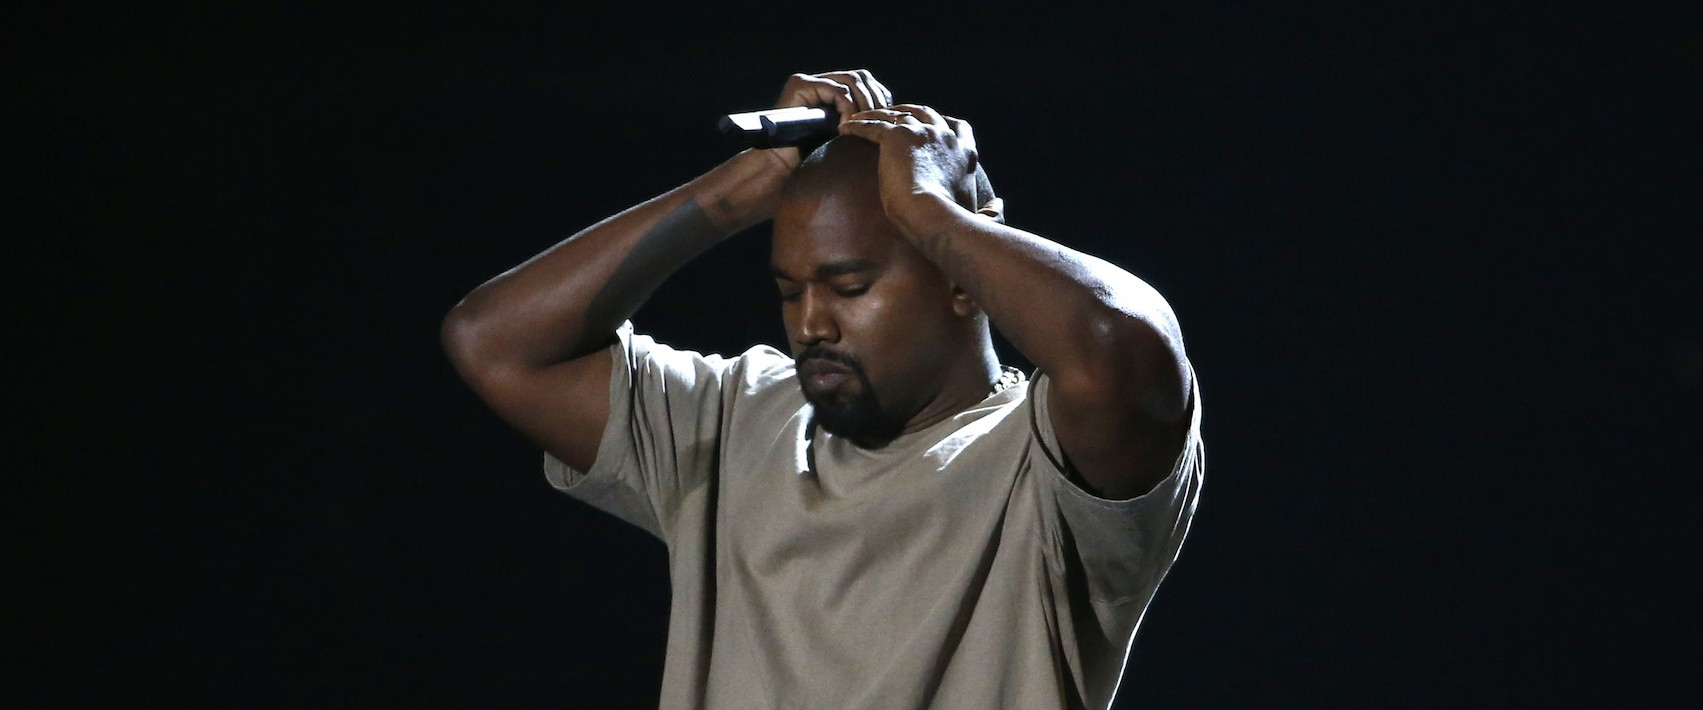 Kanye West pauses as he speaks while accepting the Video Vanguard Award at the 2015 MTV Video Music Awards in Los Angeles, August 30, 2015. REUTERS/Mario Anzuoni